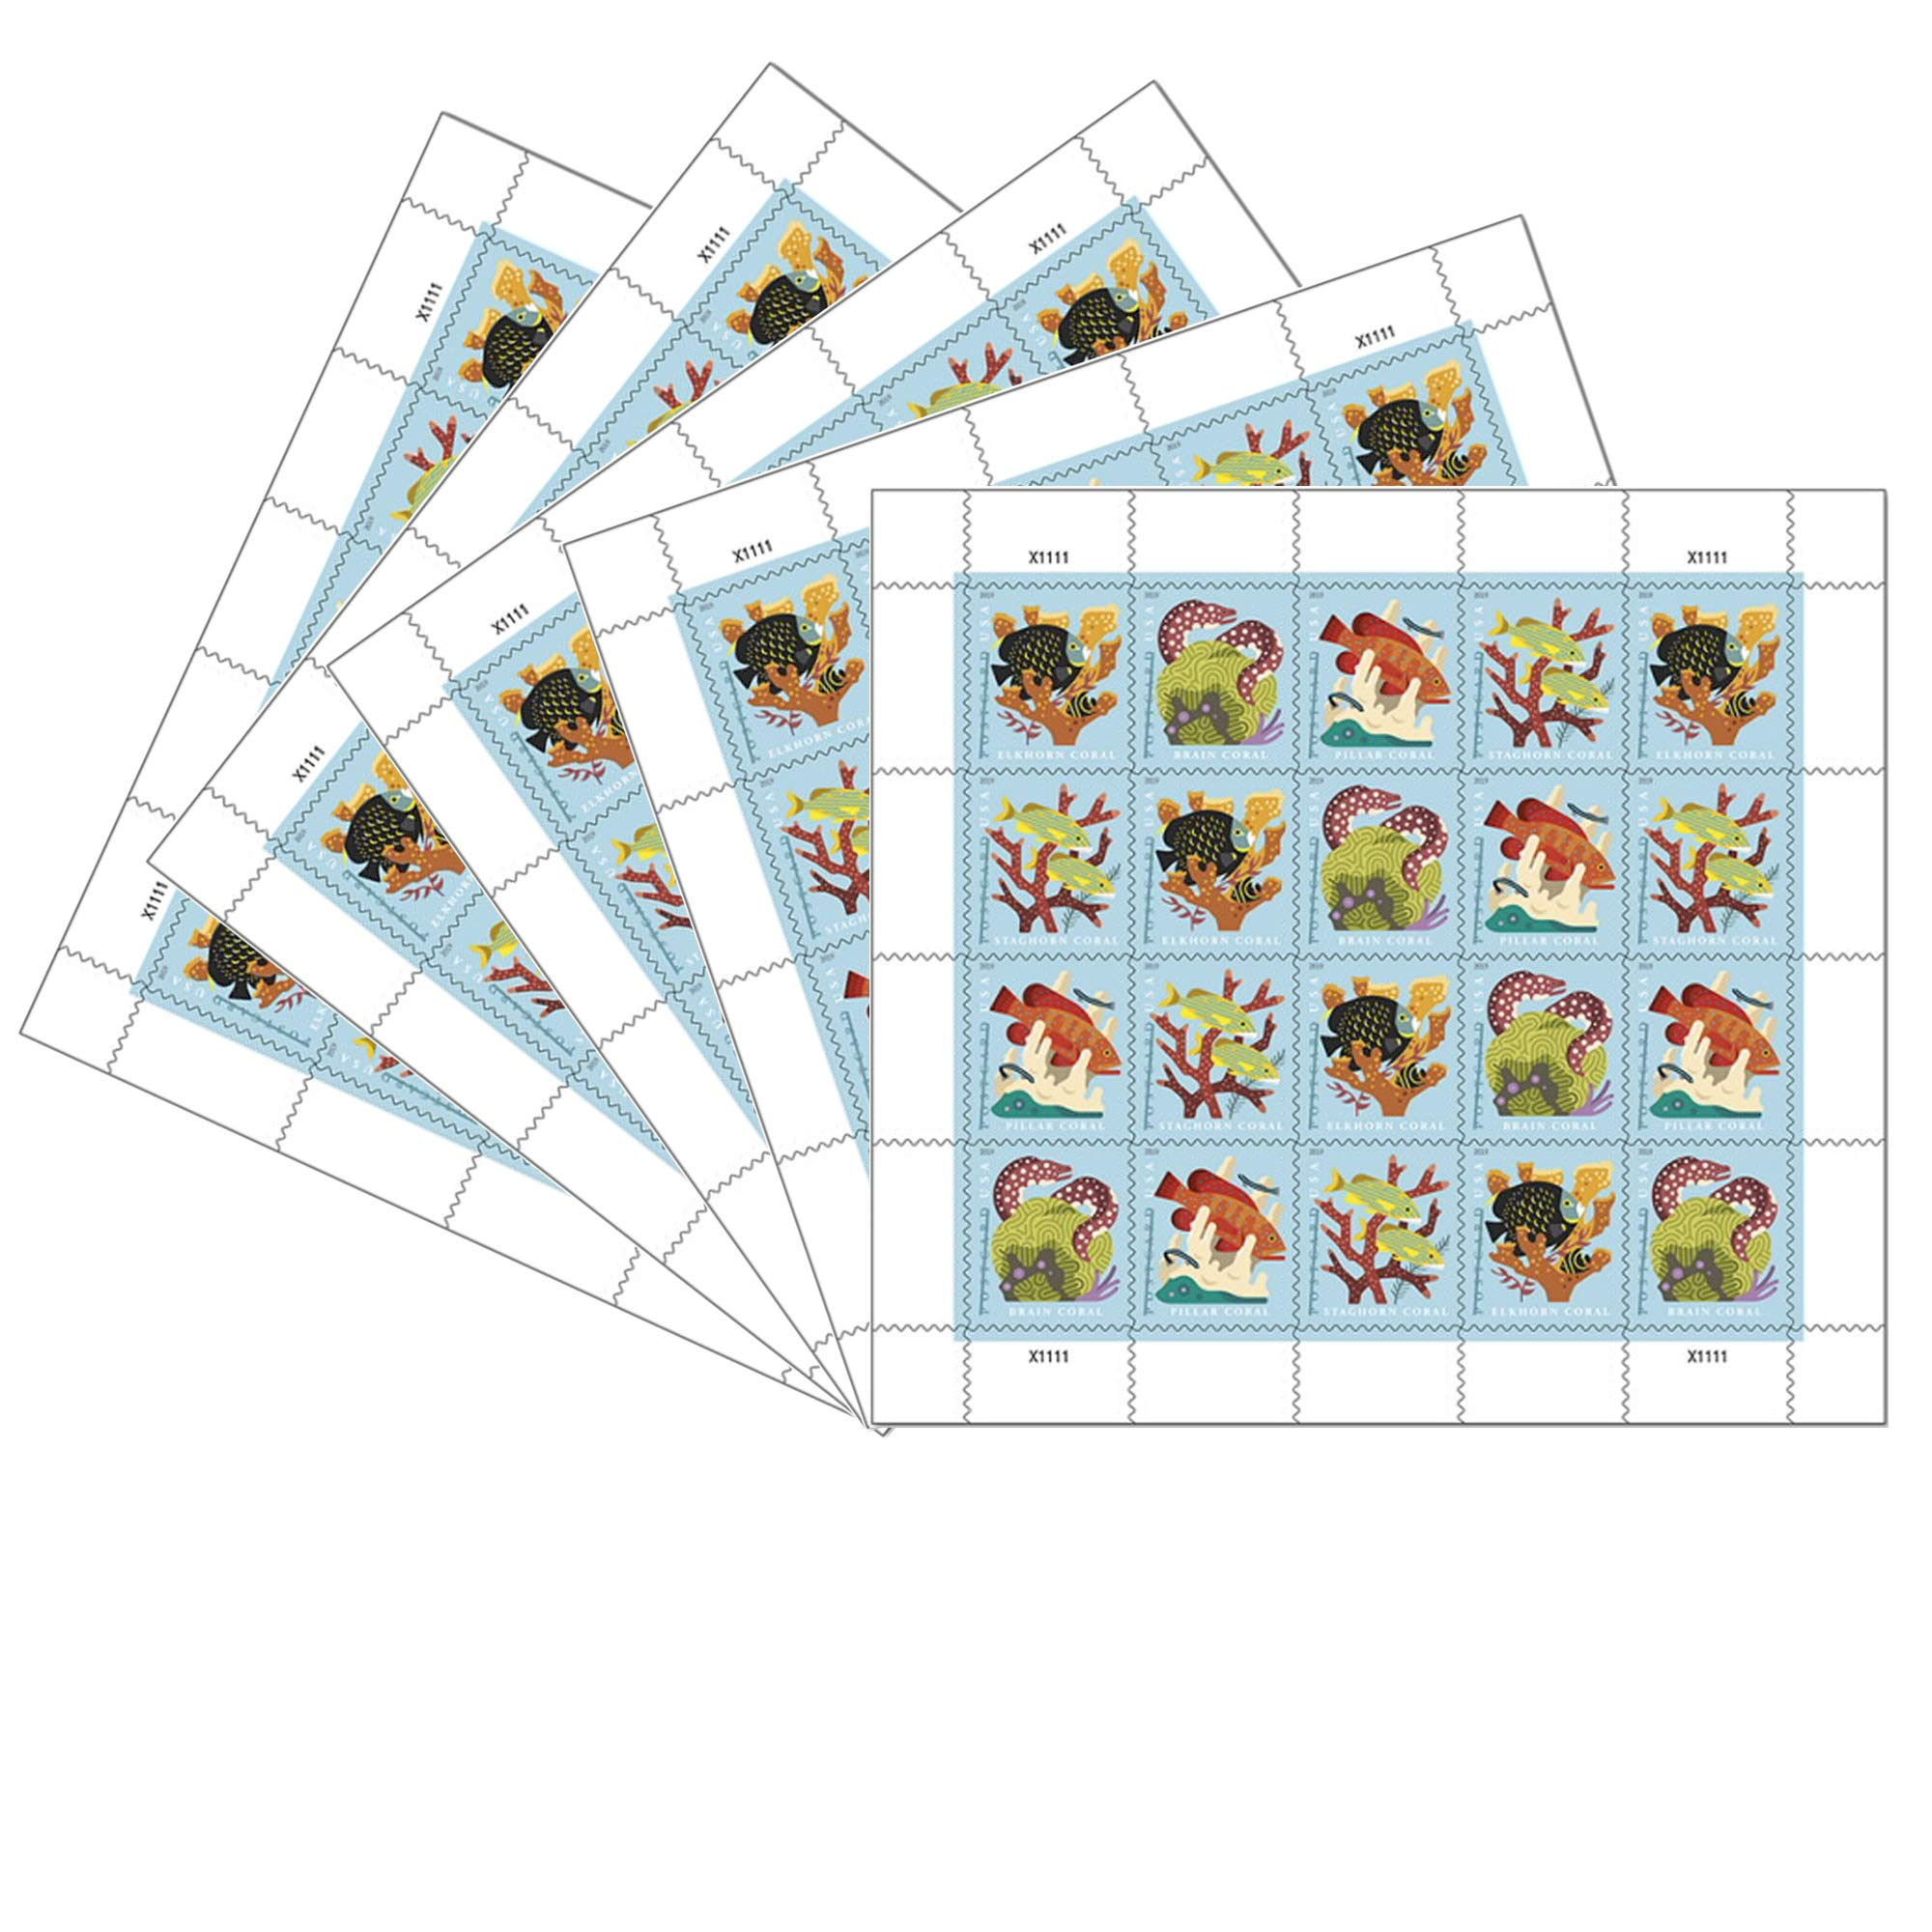 Coral Reefs Postcard 5 Sheets of 20 First Class Forever Postcard Postage Stamps Sea (100 Stamps) by USPS